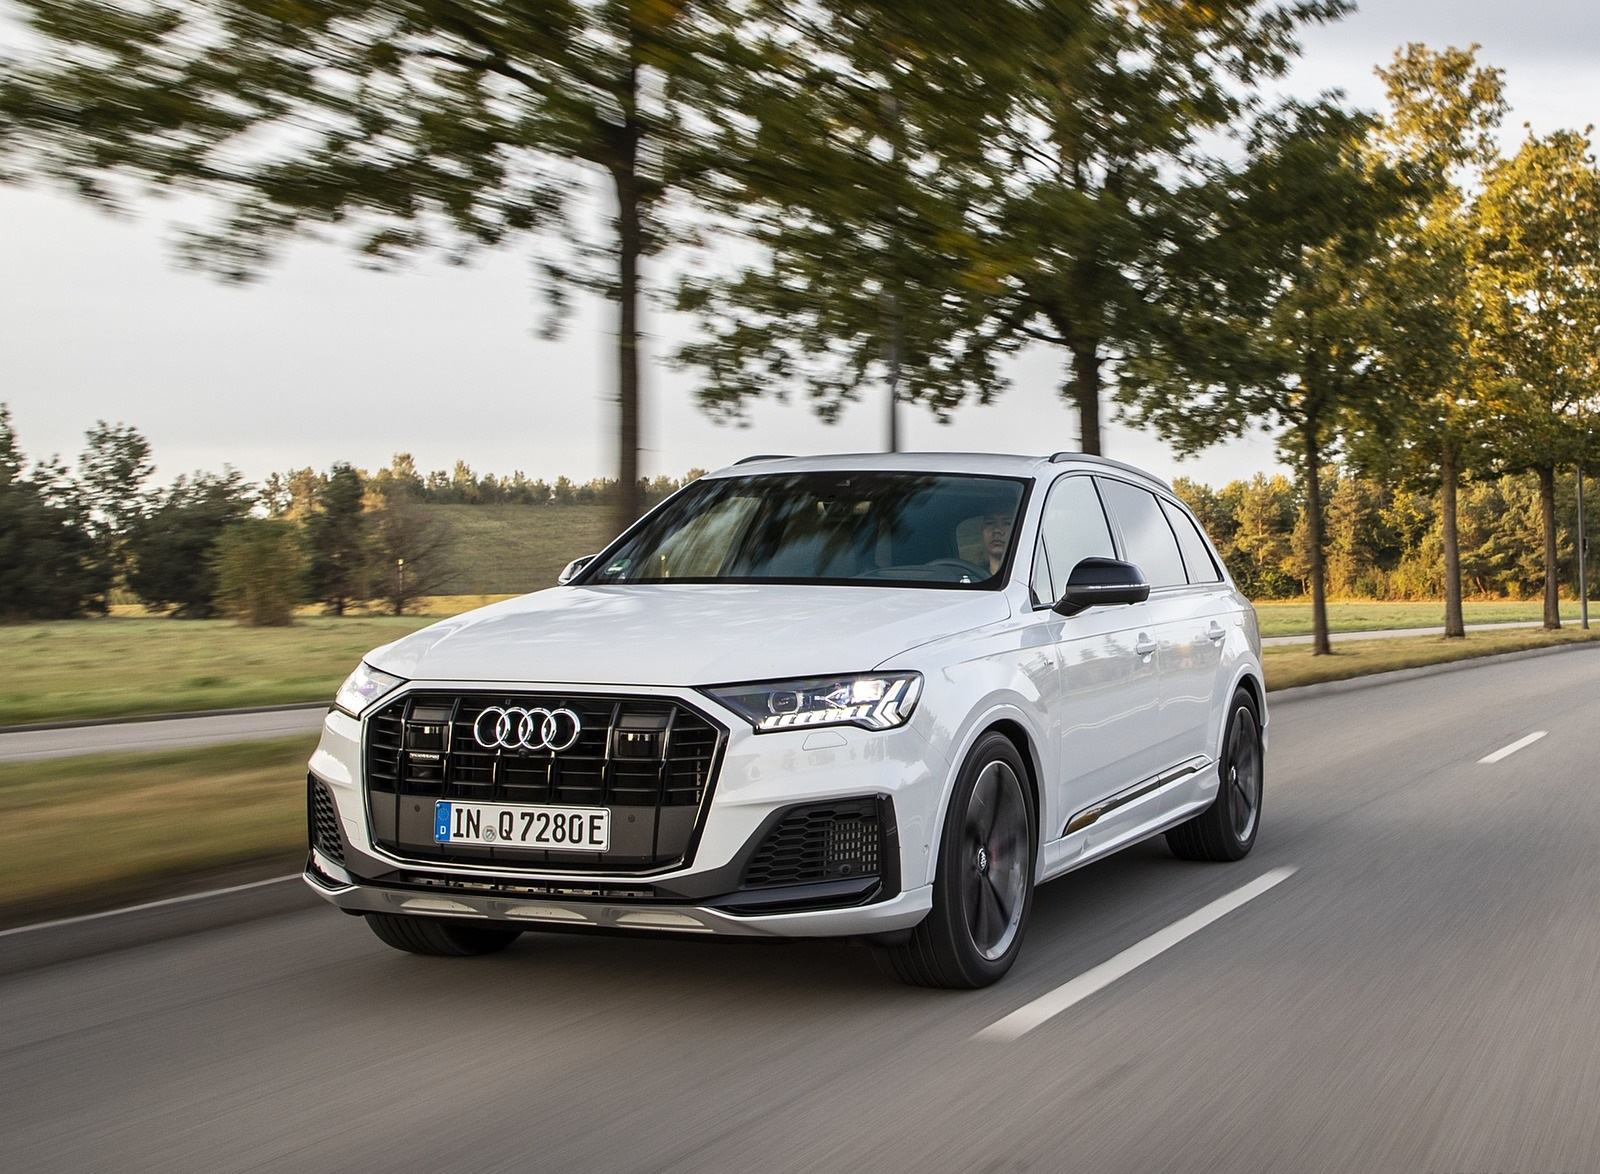 2020 Audi Q7 TFSI e quattro Plug-In Hybrid (Color: Glacier White) Front Three-Quarter Wallpapers (5)